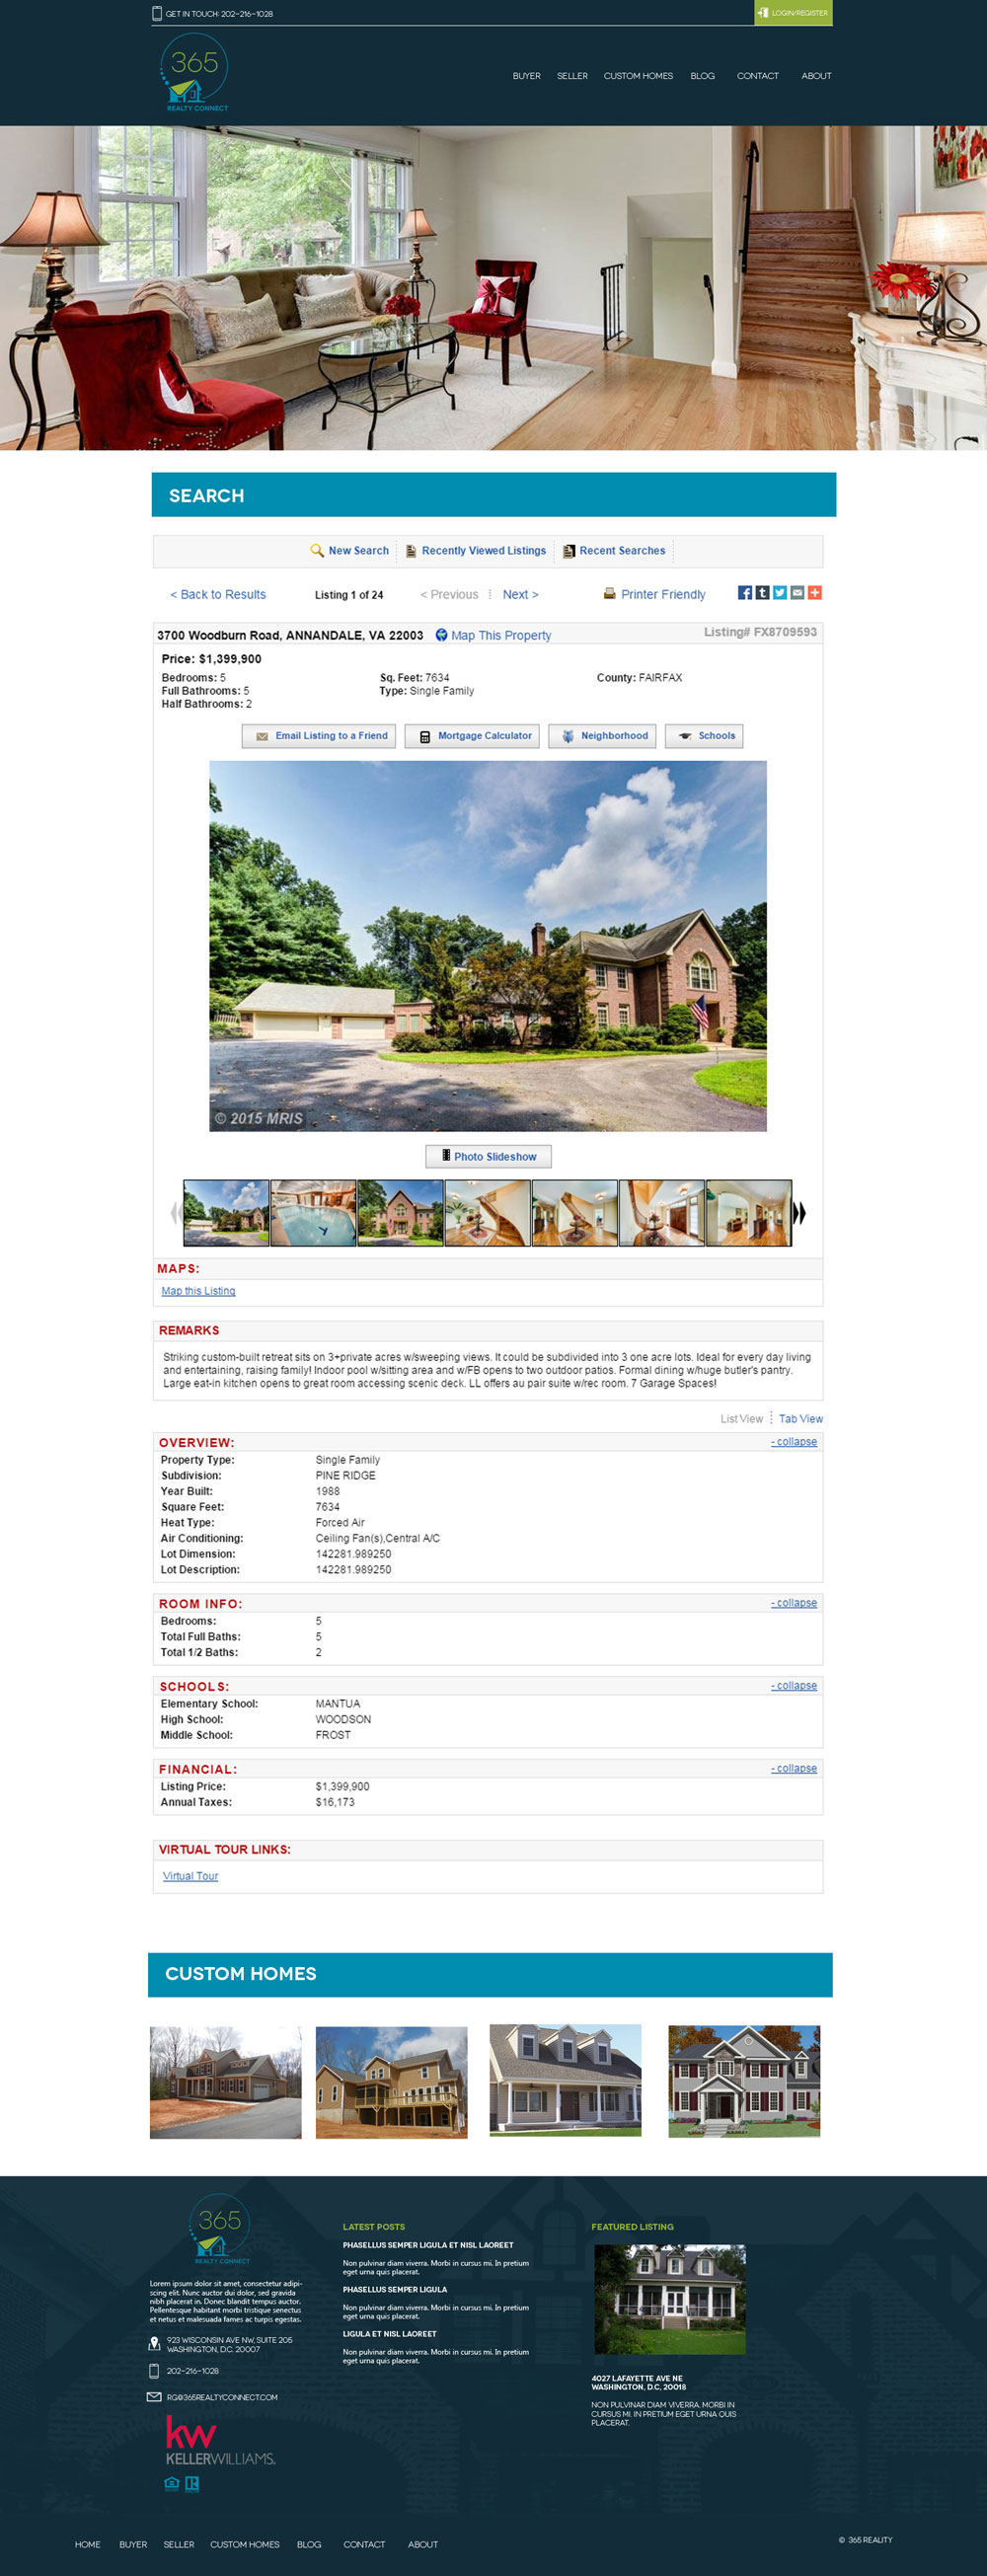 Real Estate Company Website Mock - Single